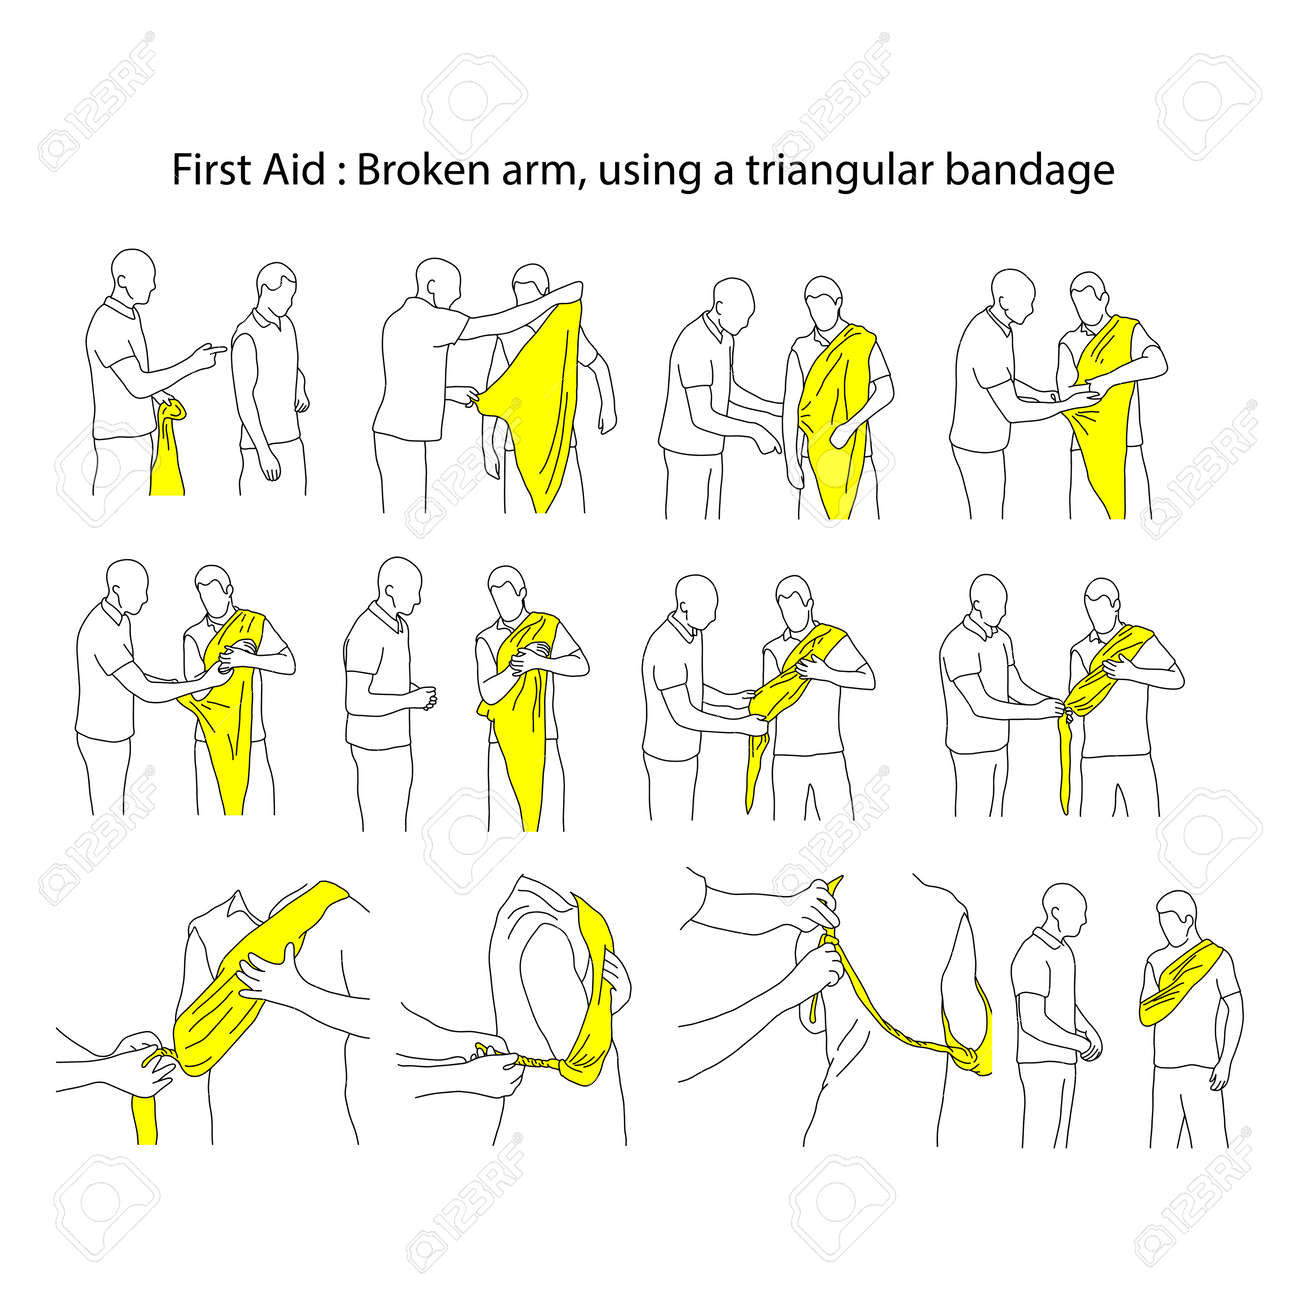 Broken arm using a triangular bandage vector illustration outline sketch hand drawn with black lines isolated on white background. First aid process. - 92611329